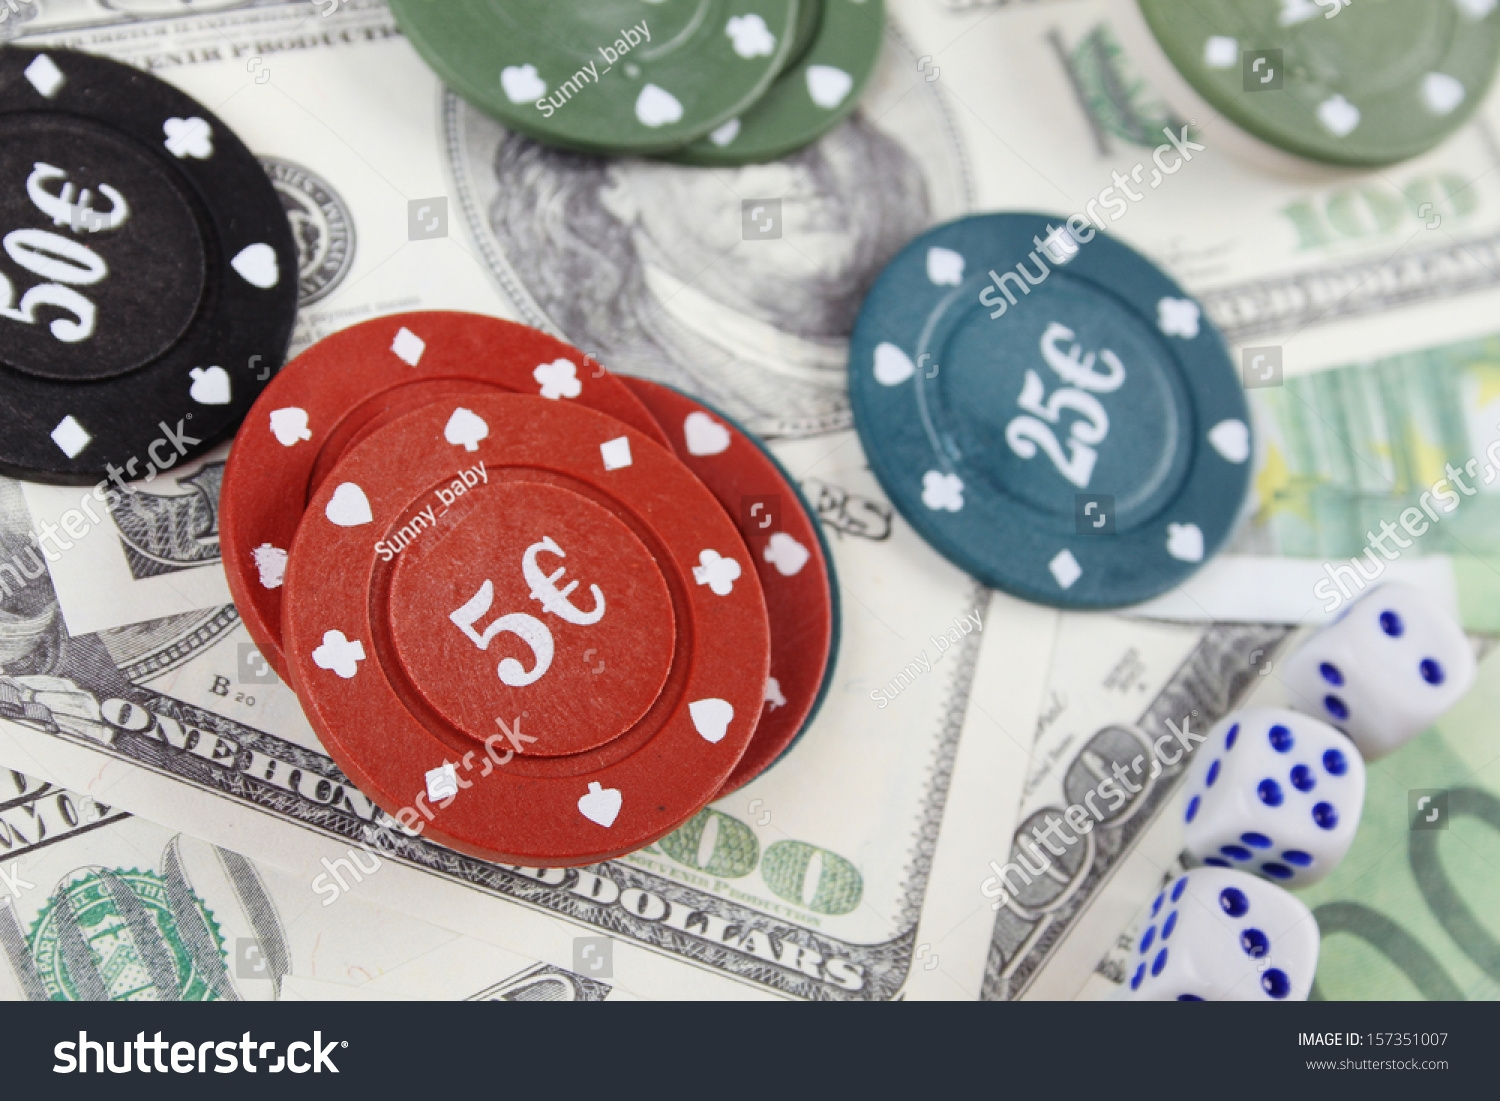 $725 NO DEPOSIT CASINO BONUS at Party Casino